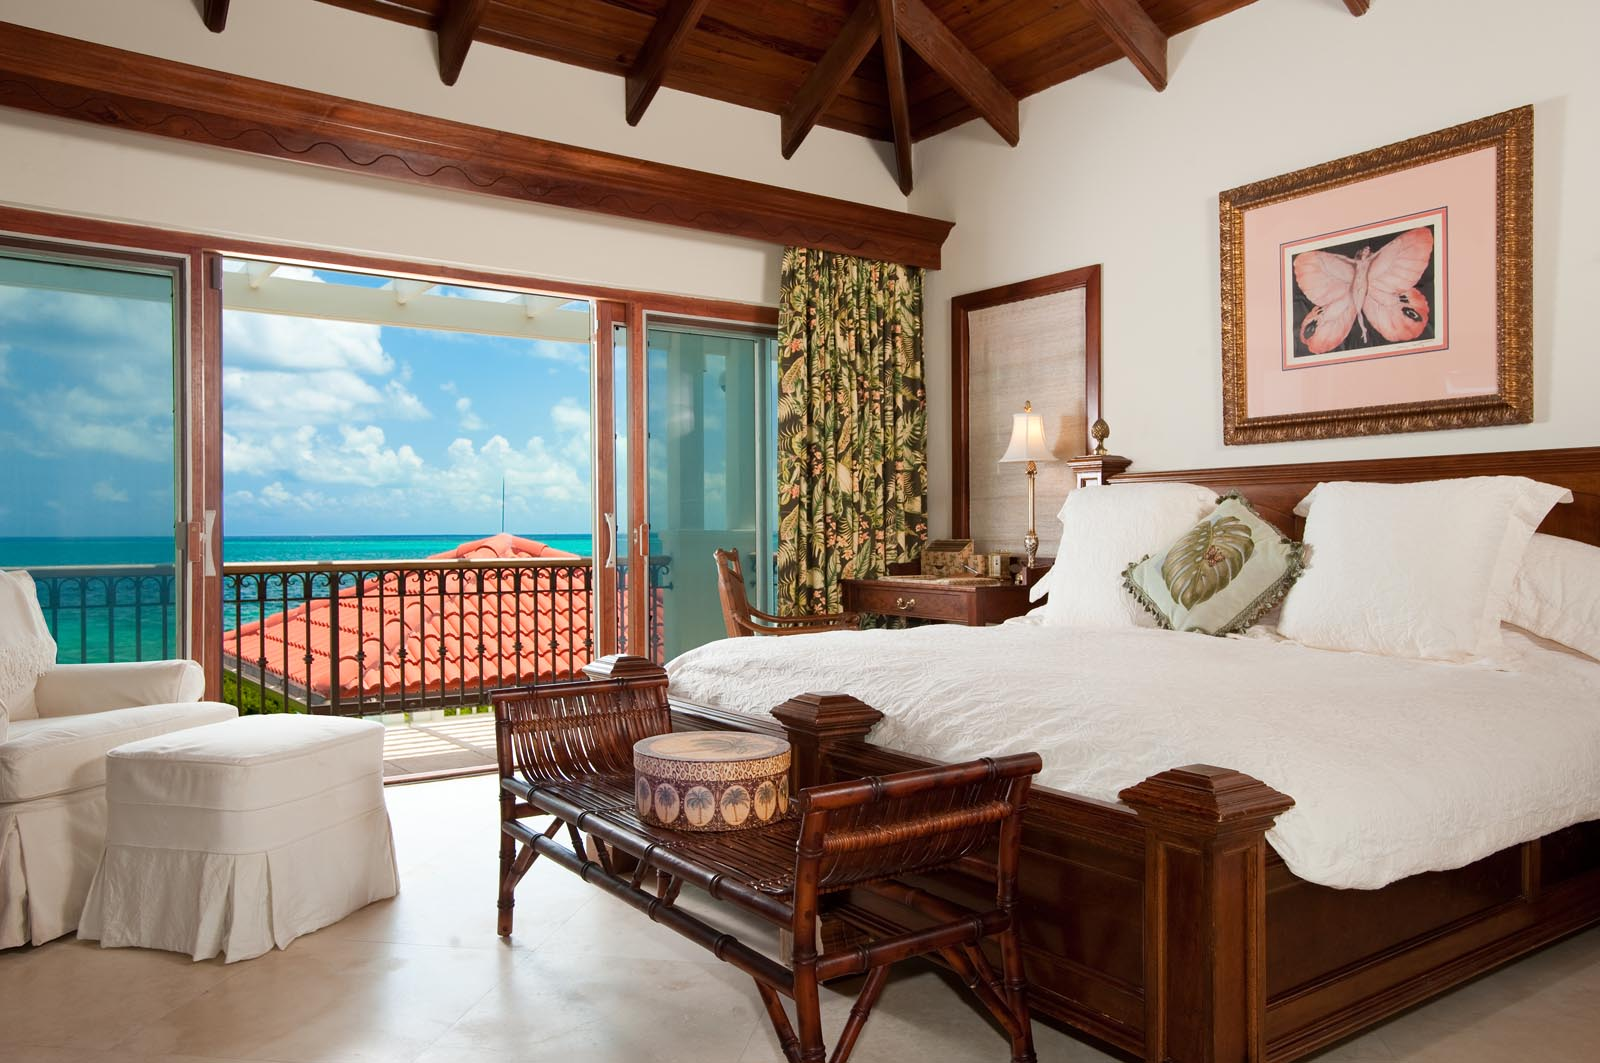 Feel the smoothing breeze from the ocean at this Turks and Caicos luxury villa rental.